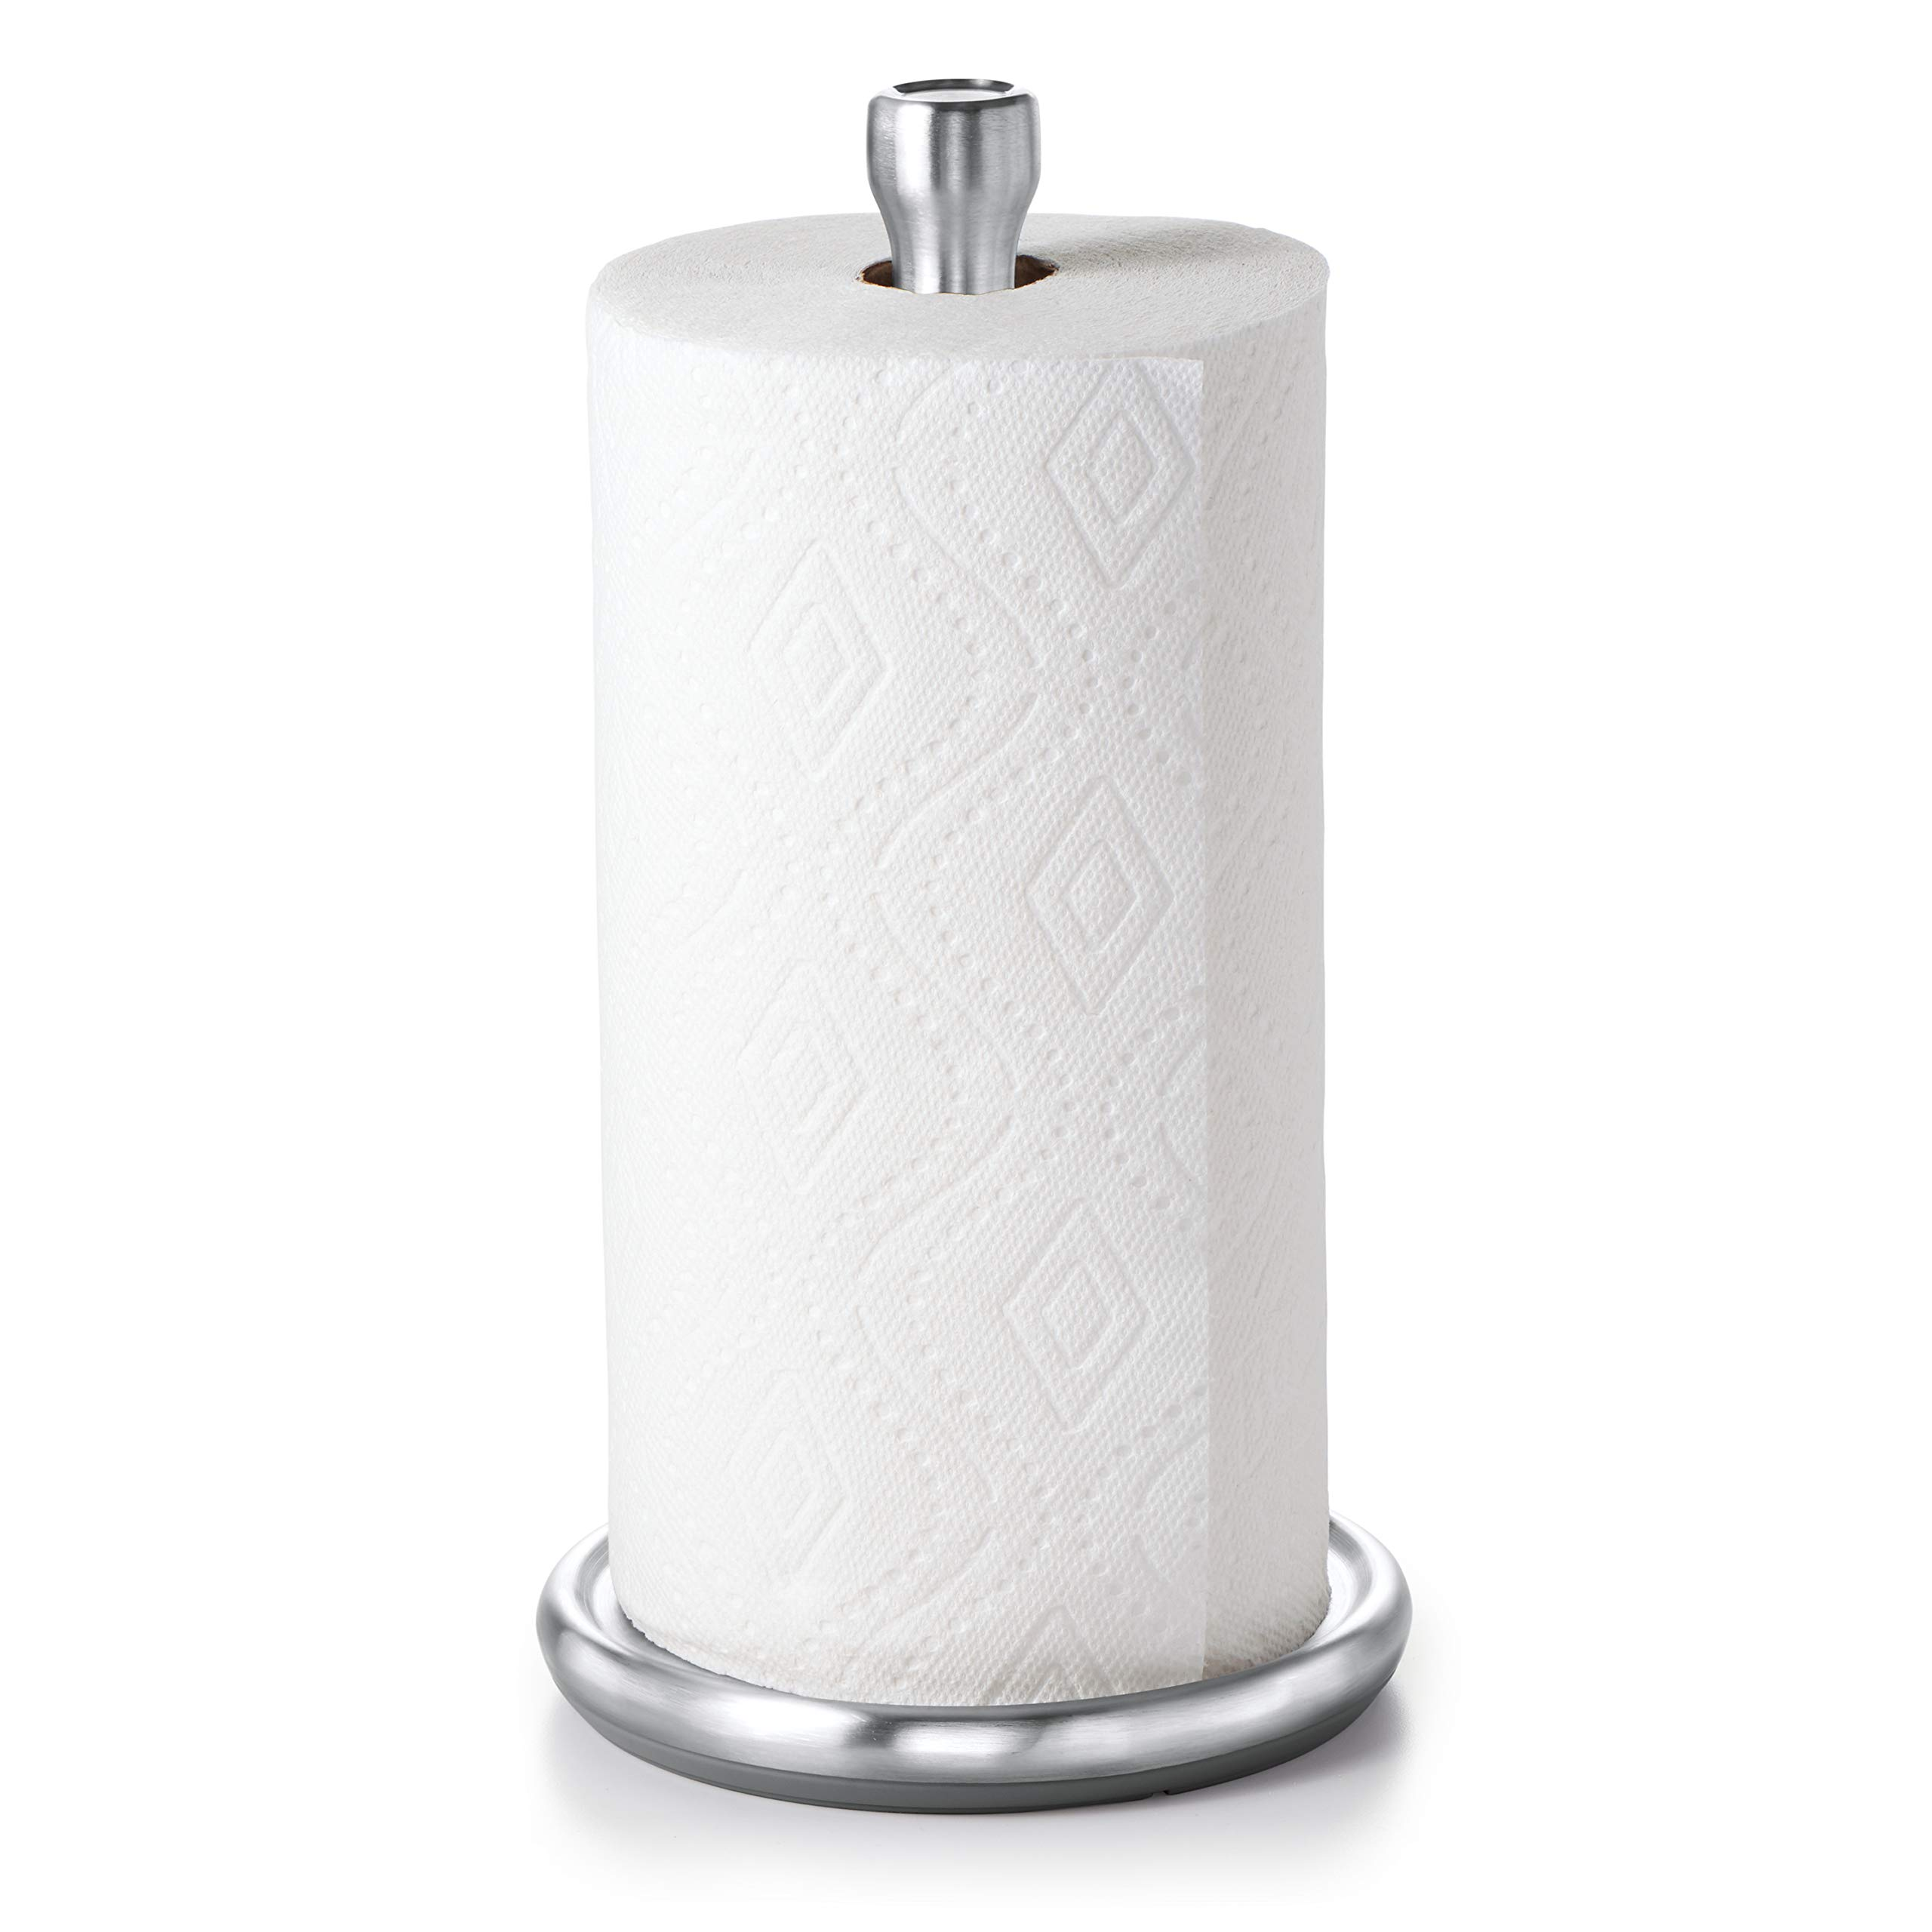 OXO Good Grips Steady Paper Towel Holder by OXO